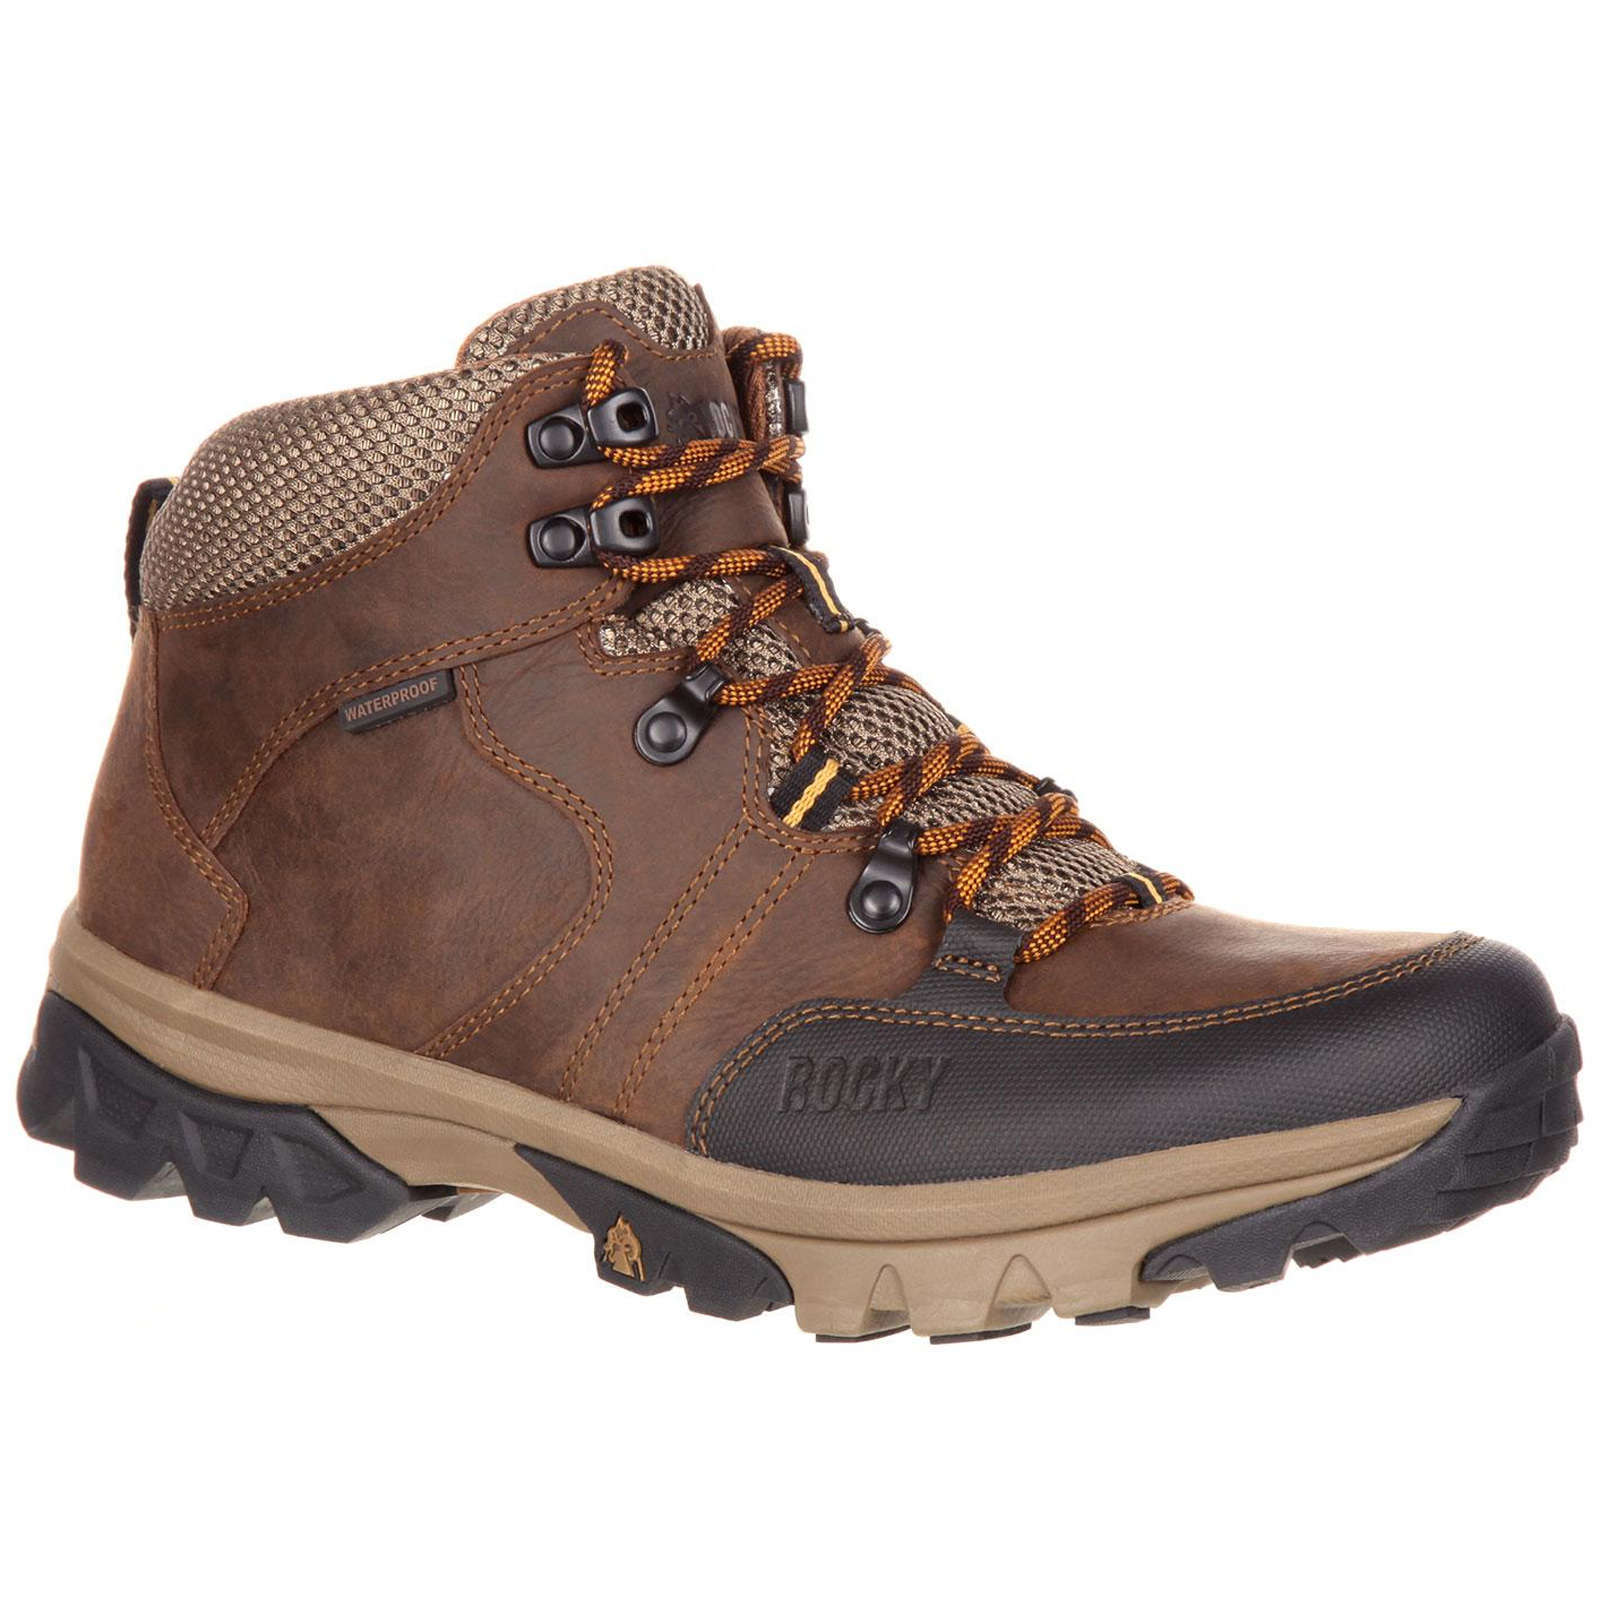 ae99b2875c9 Details about Rocky Endeavor Point Waterproof Heavy Duty Made In USA Boots  Premium Heavy Duty